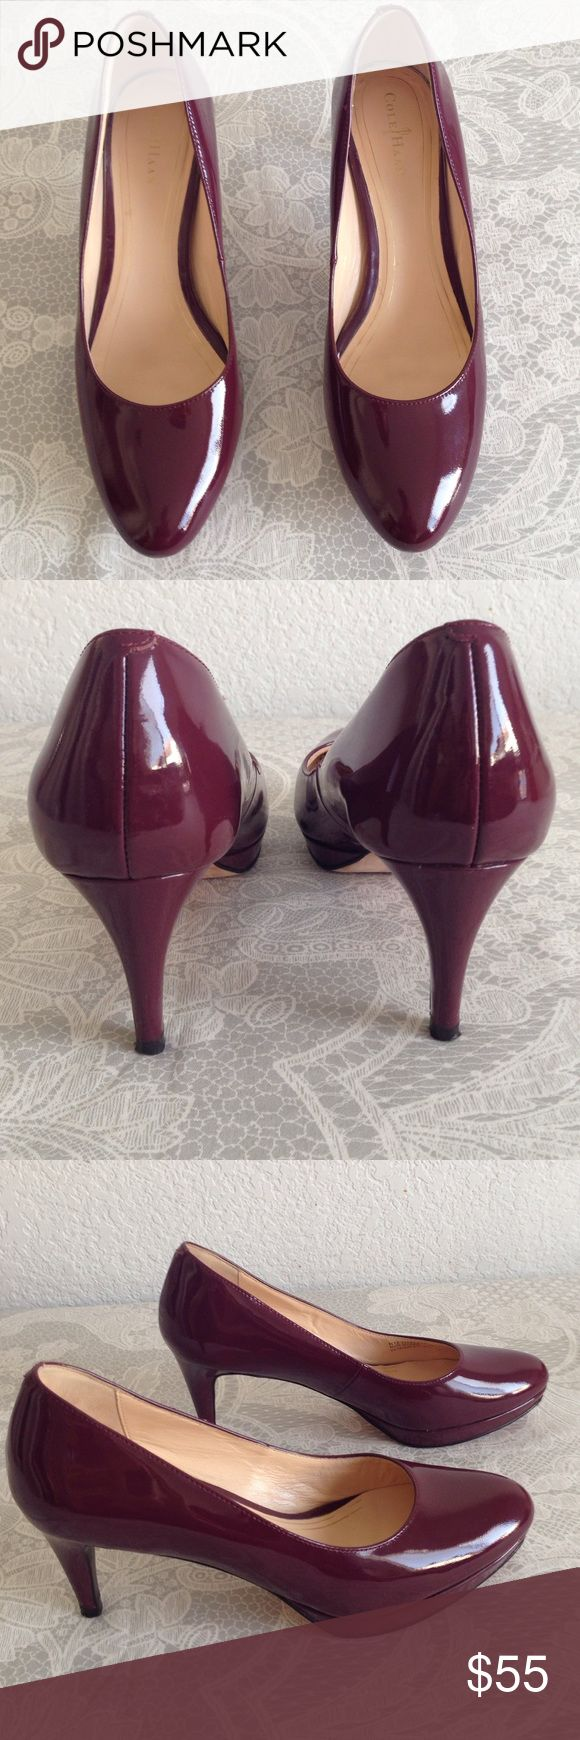 "Cole hann 2.75"" heels. 0.5"" platform. Patent leather. Burgundy.  Has tiny scuffs on 1 heel as show in last picture otherwise great condition.      I donot Trade!!! Cole Haan Shoes Heels"